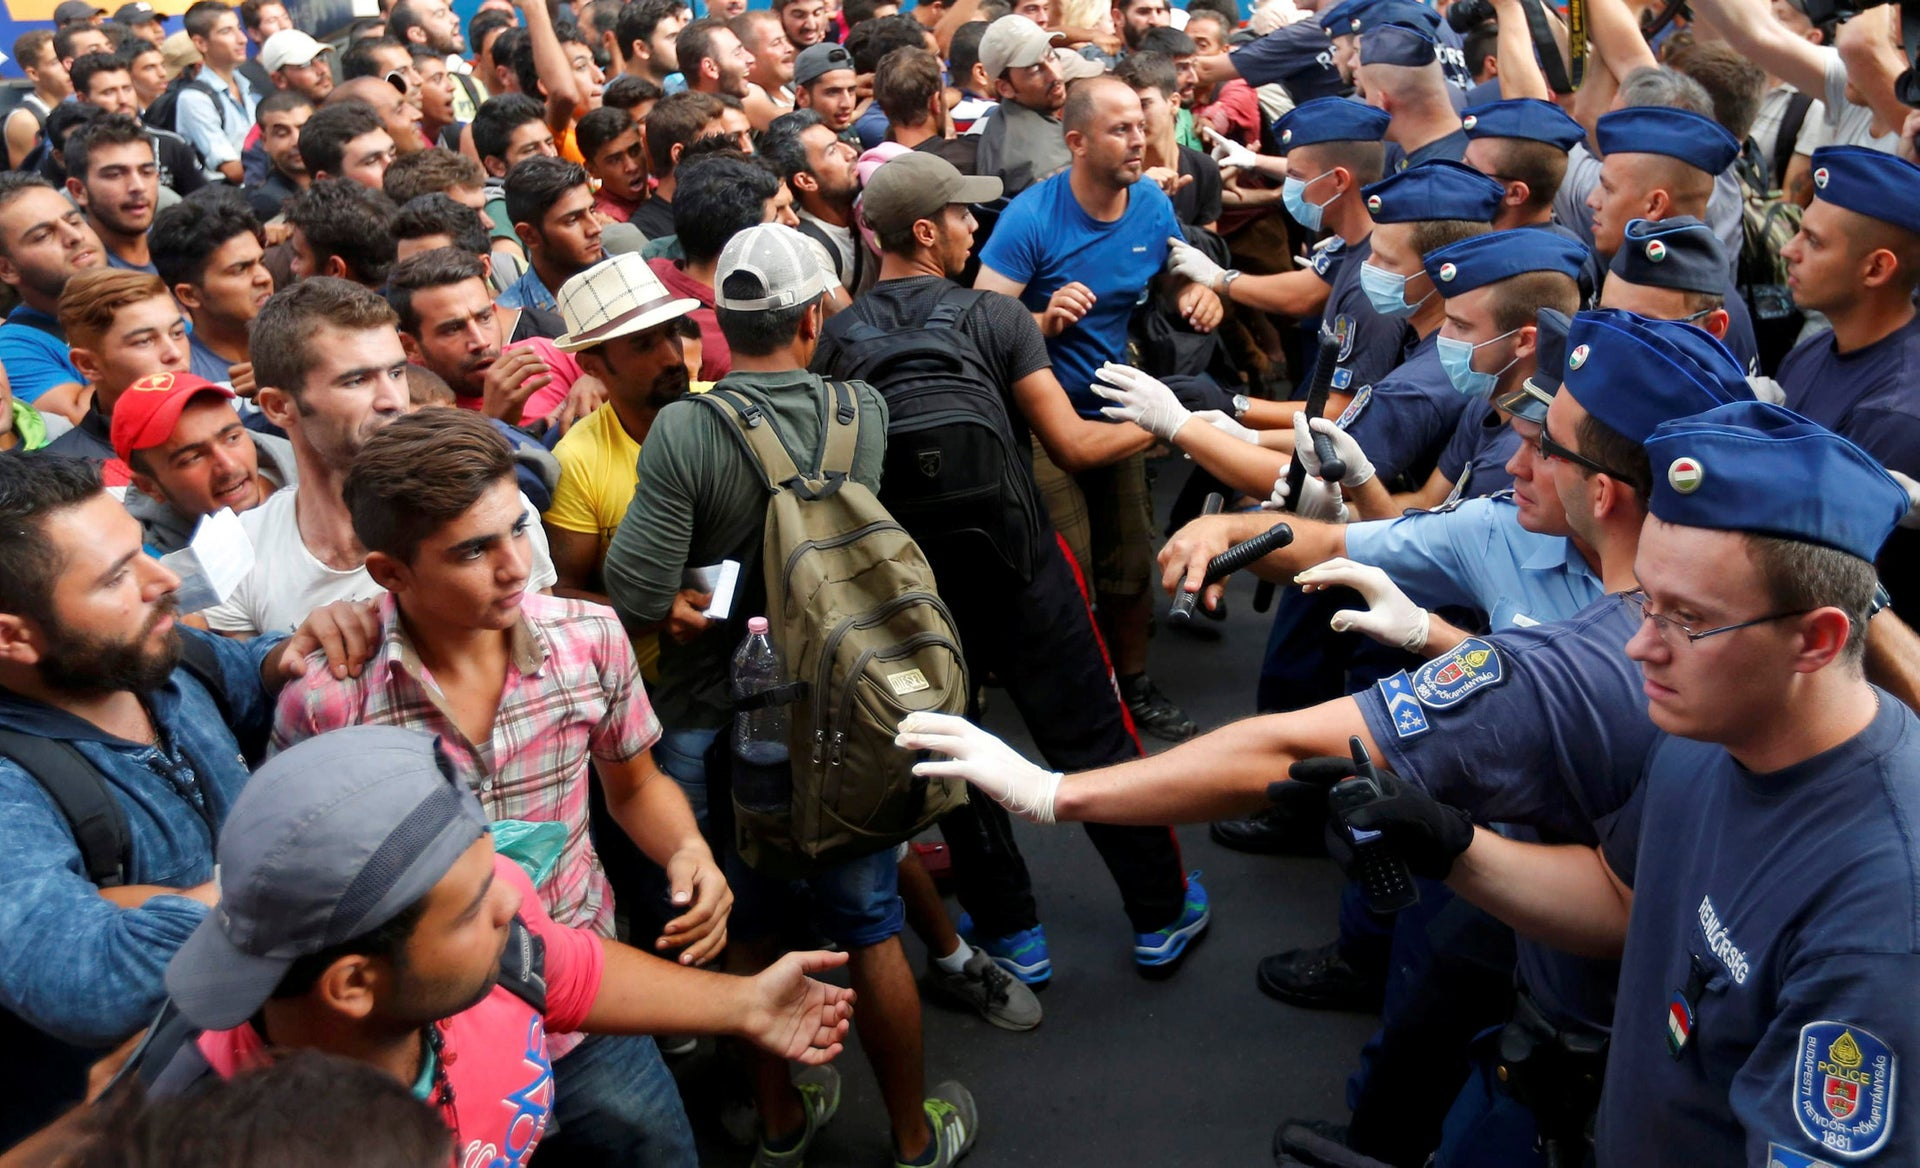 Migrants face Hungarian police in the main Eastern Railway station in Budapest, Hungary, September 1, 2015. Hungary closed Budapest's main Eastern Railway station on Tuesday morning with no trains departing or arriving until further notice, a spokesman for state railway company MAV said. There are hundreds of migrants waiting at the station. People have been told to leave the station and police have lined up at the main entrance, national news agency MTI reported.